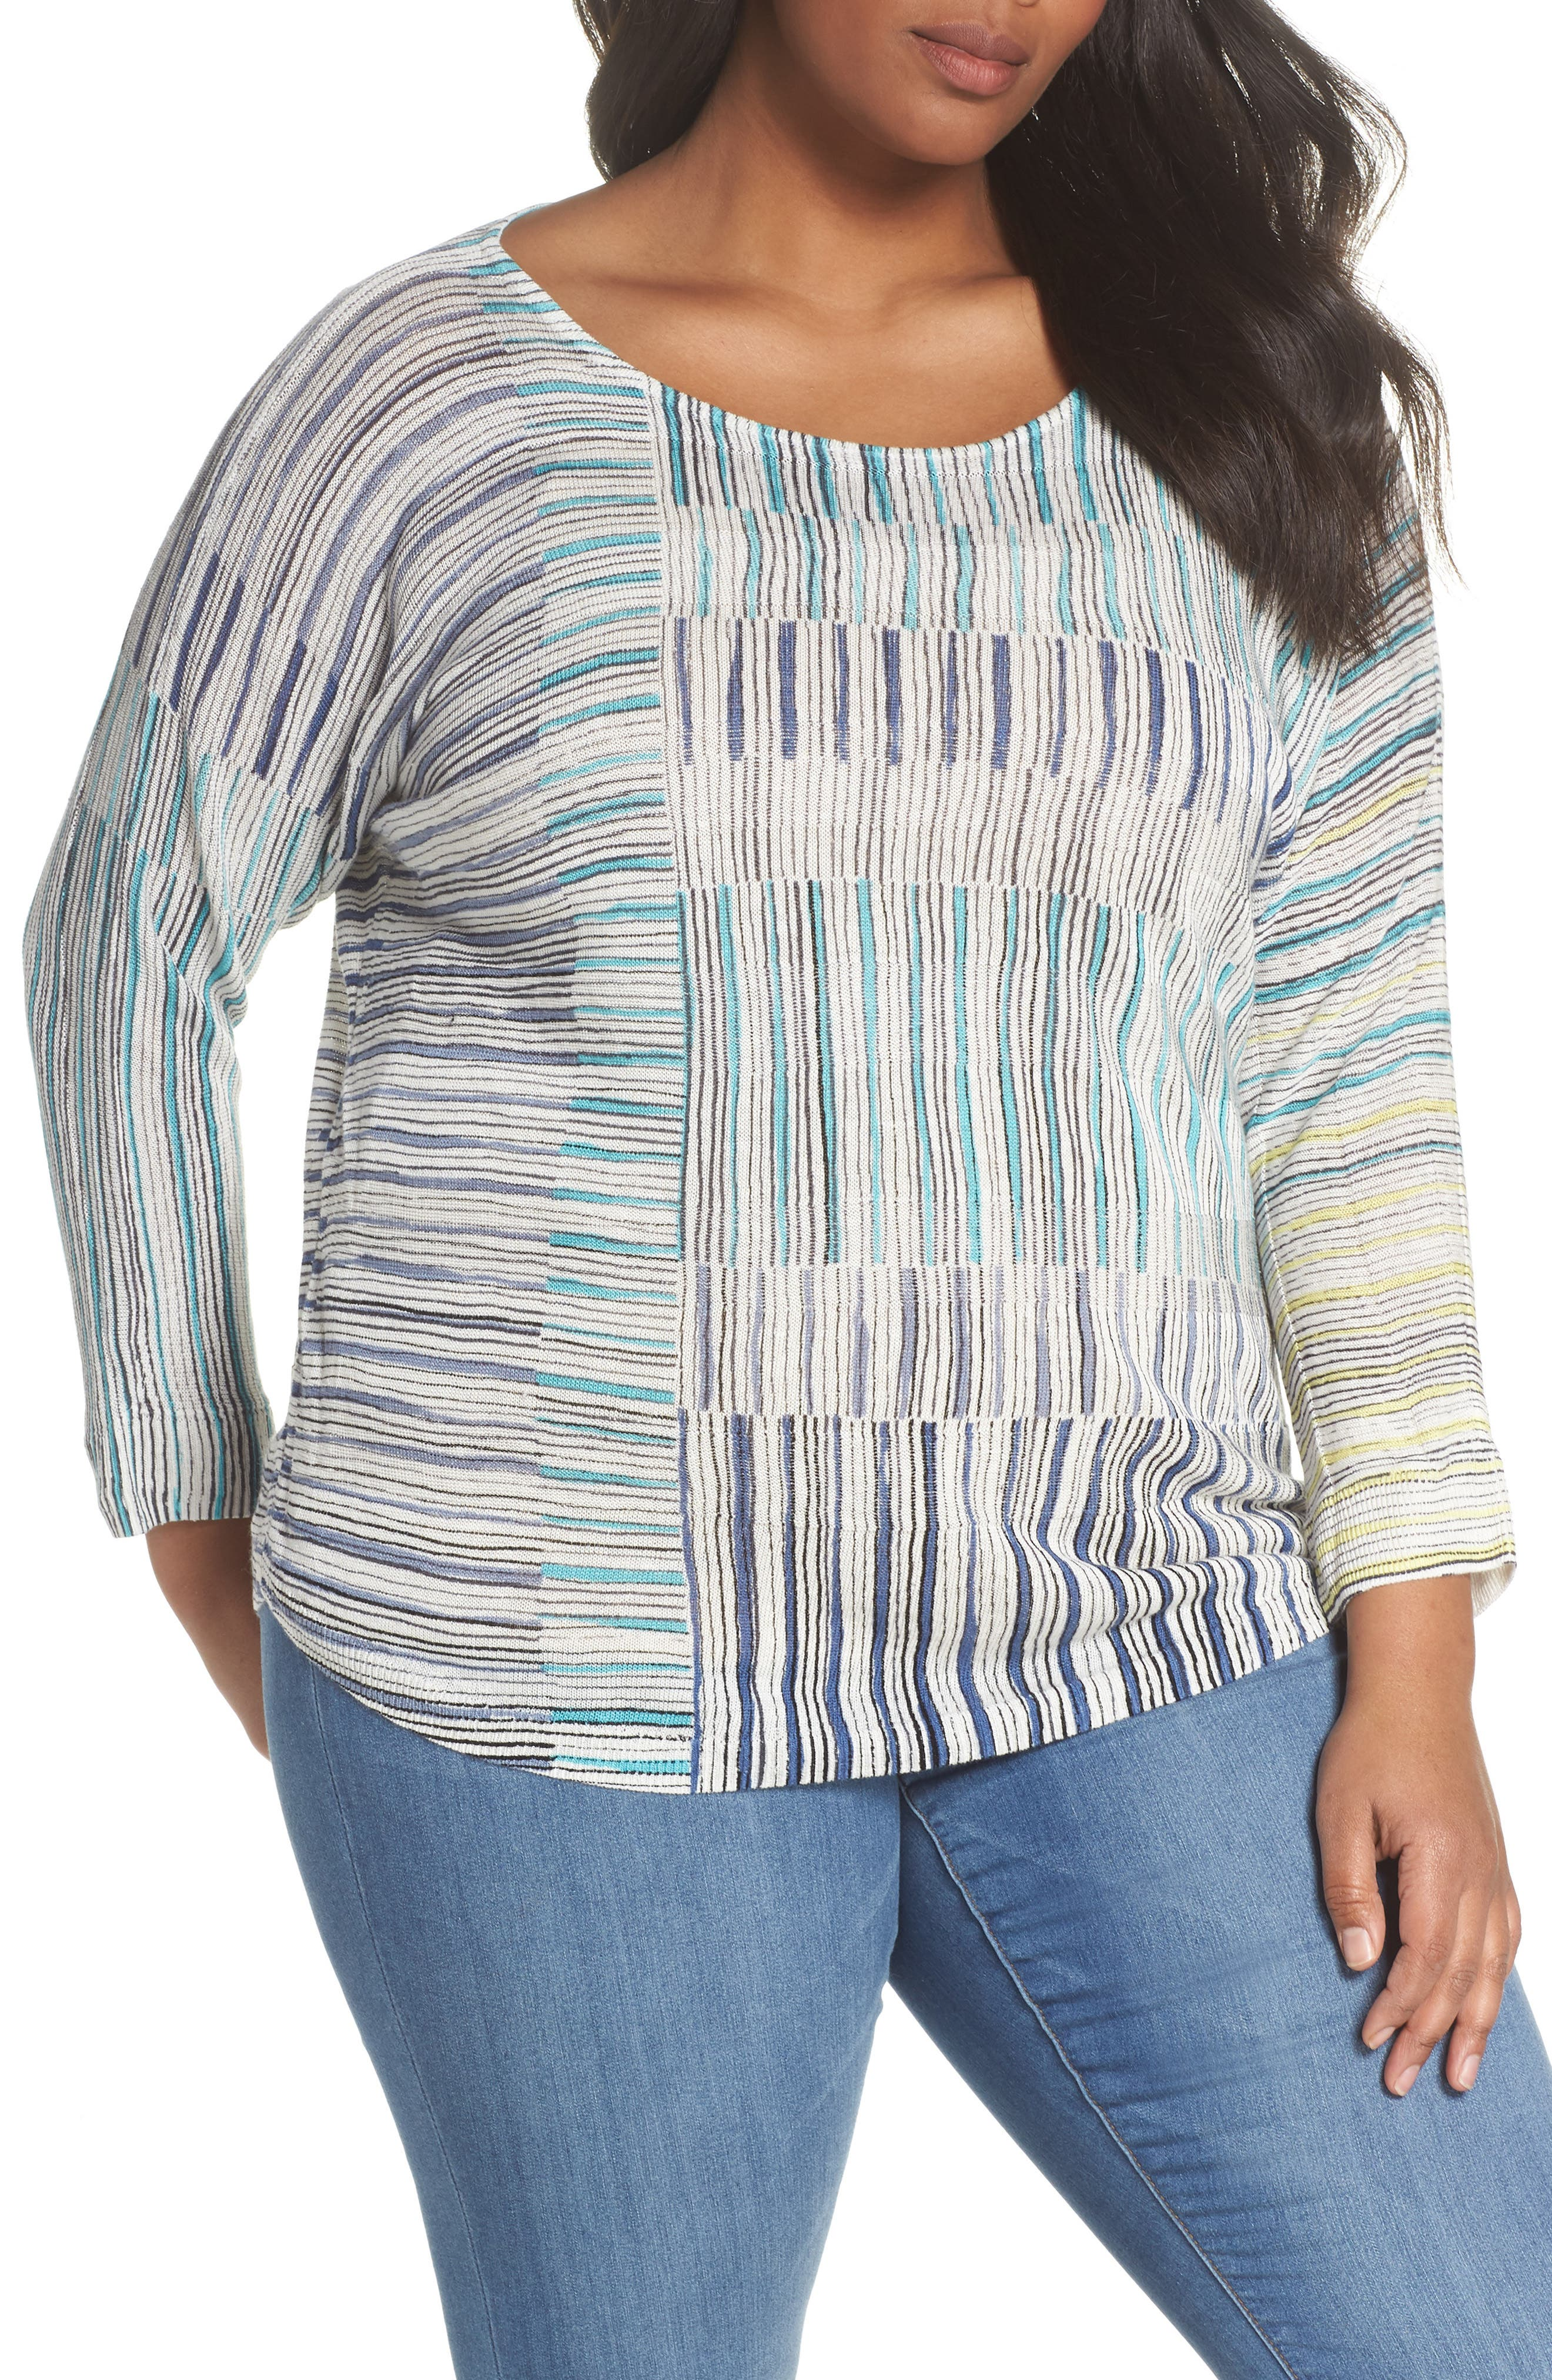 Main Image - NIC+ZOE Sea Wall Stripe Scoop Neck Top (Plus Size)